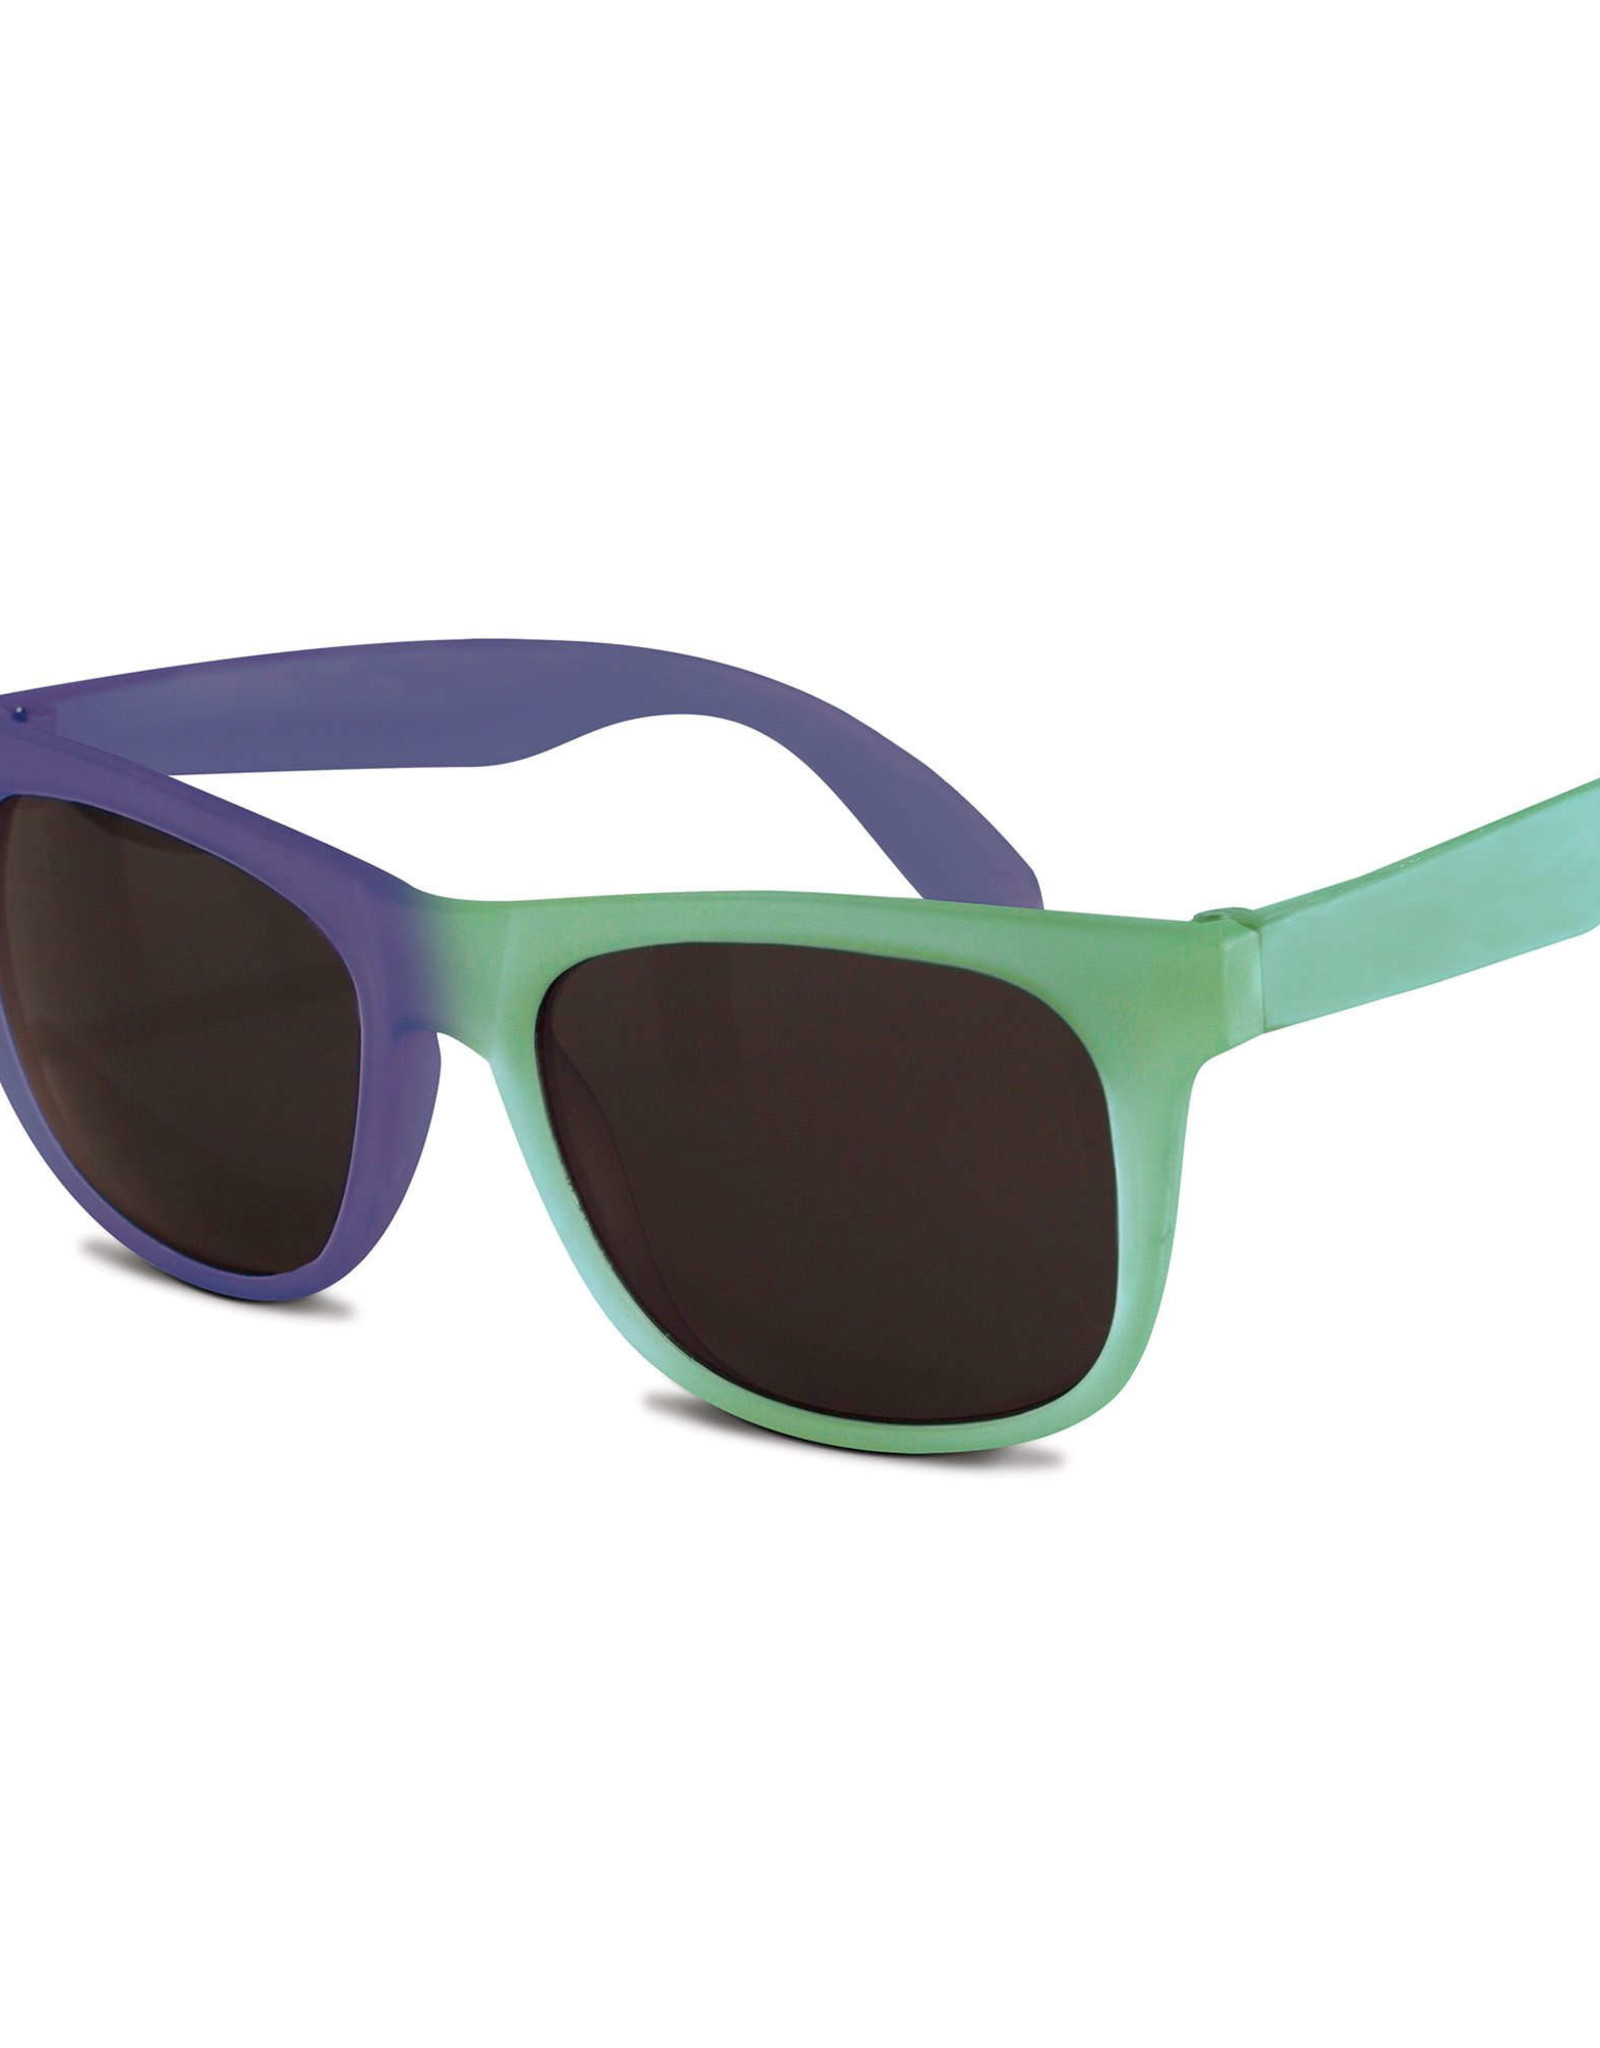 Real Shades Unbreakable Color Changing Sunglasses Green Midnight Blue 7+